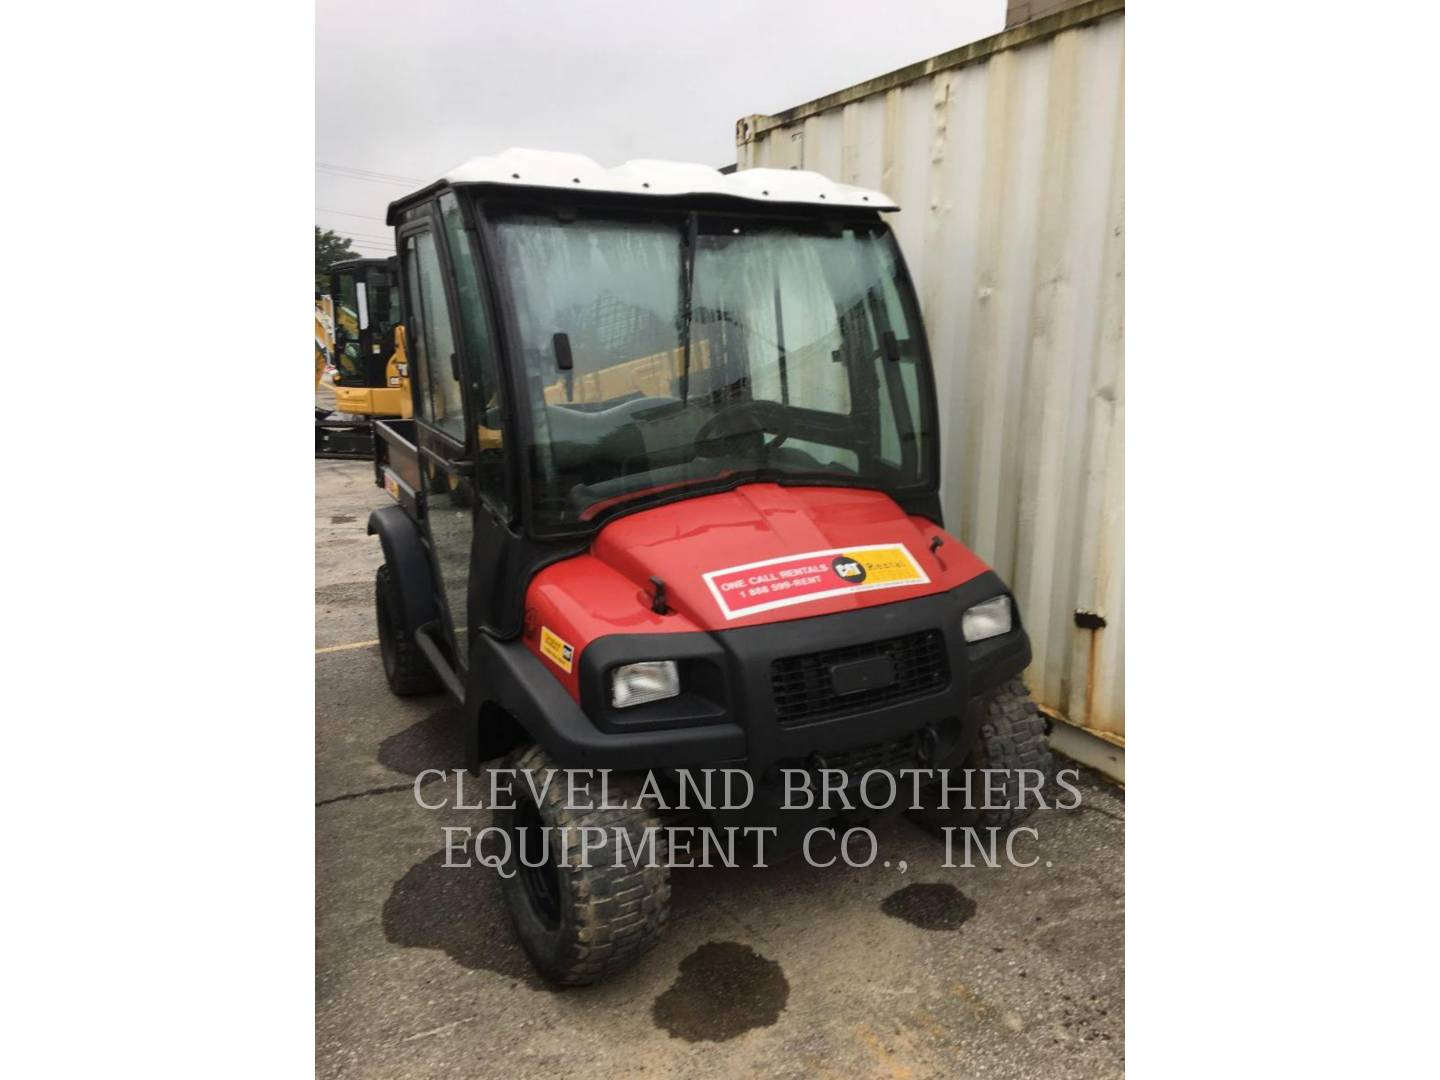 2017 Misc LSC4 Utility Vehicle for sale in Granbury , TX | IronSearch